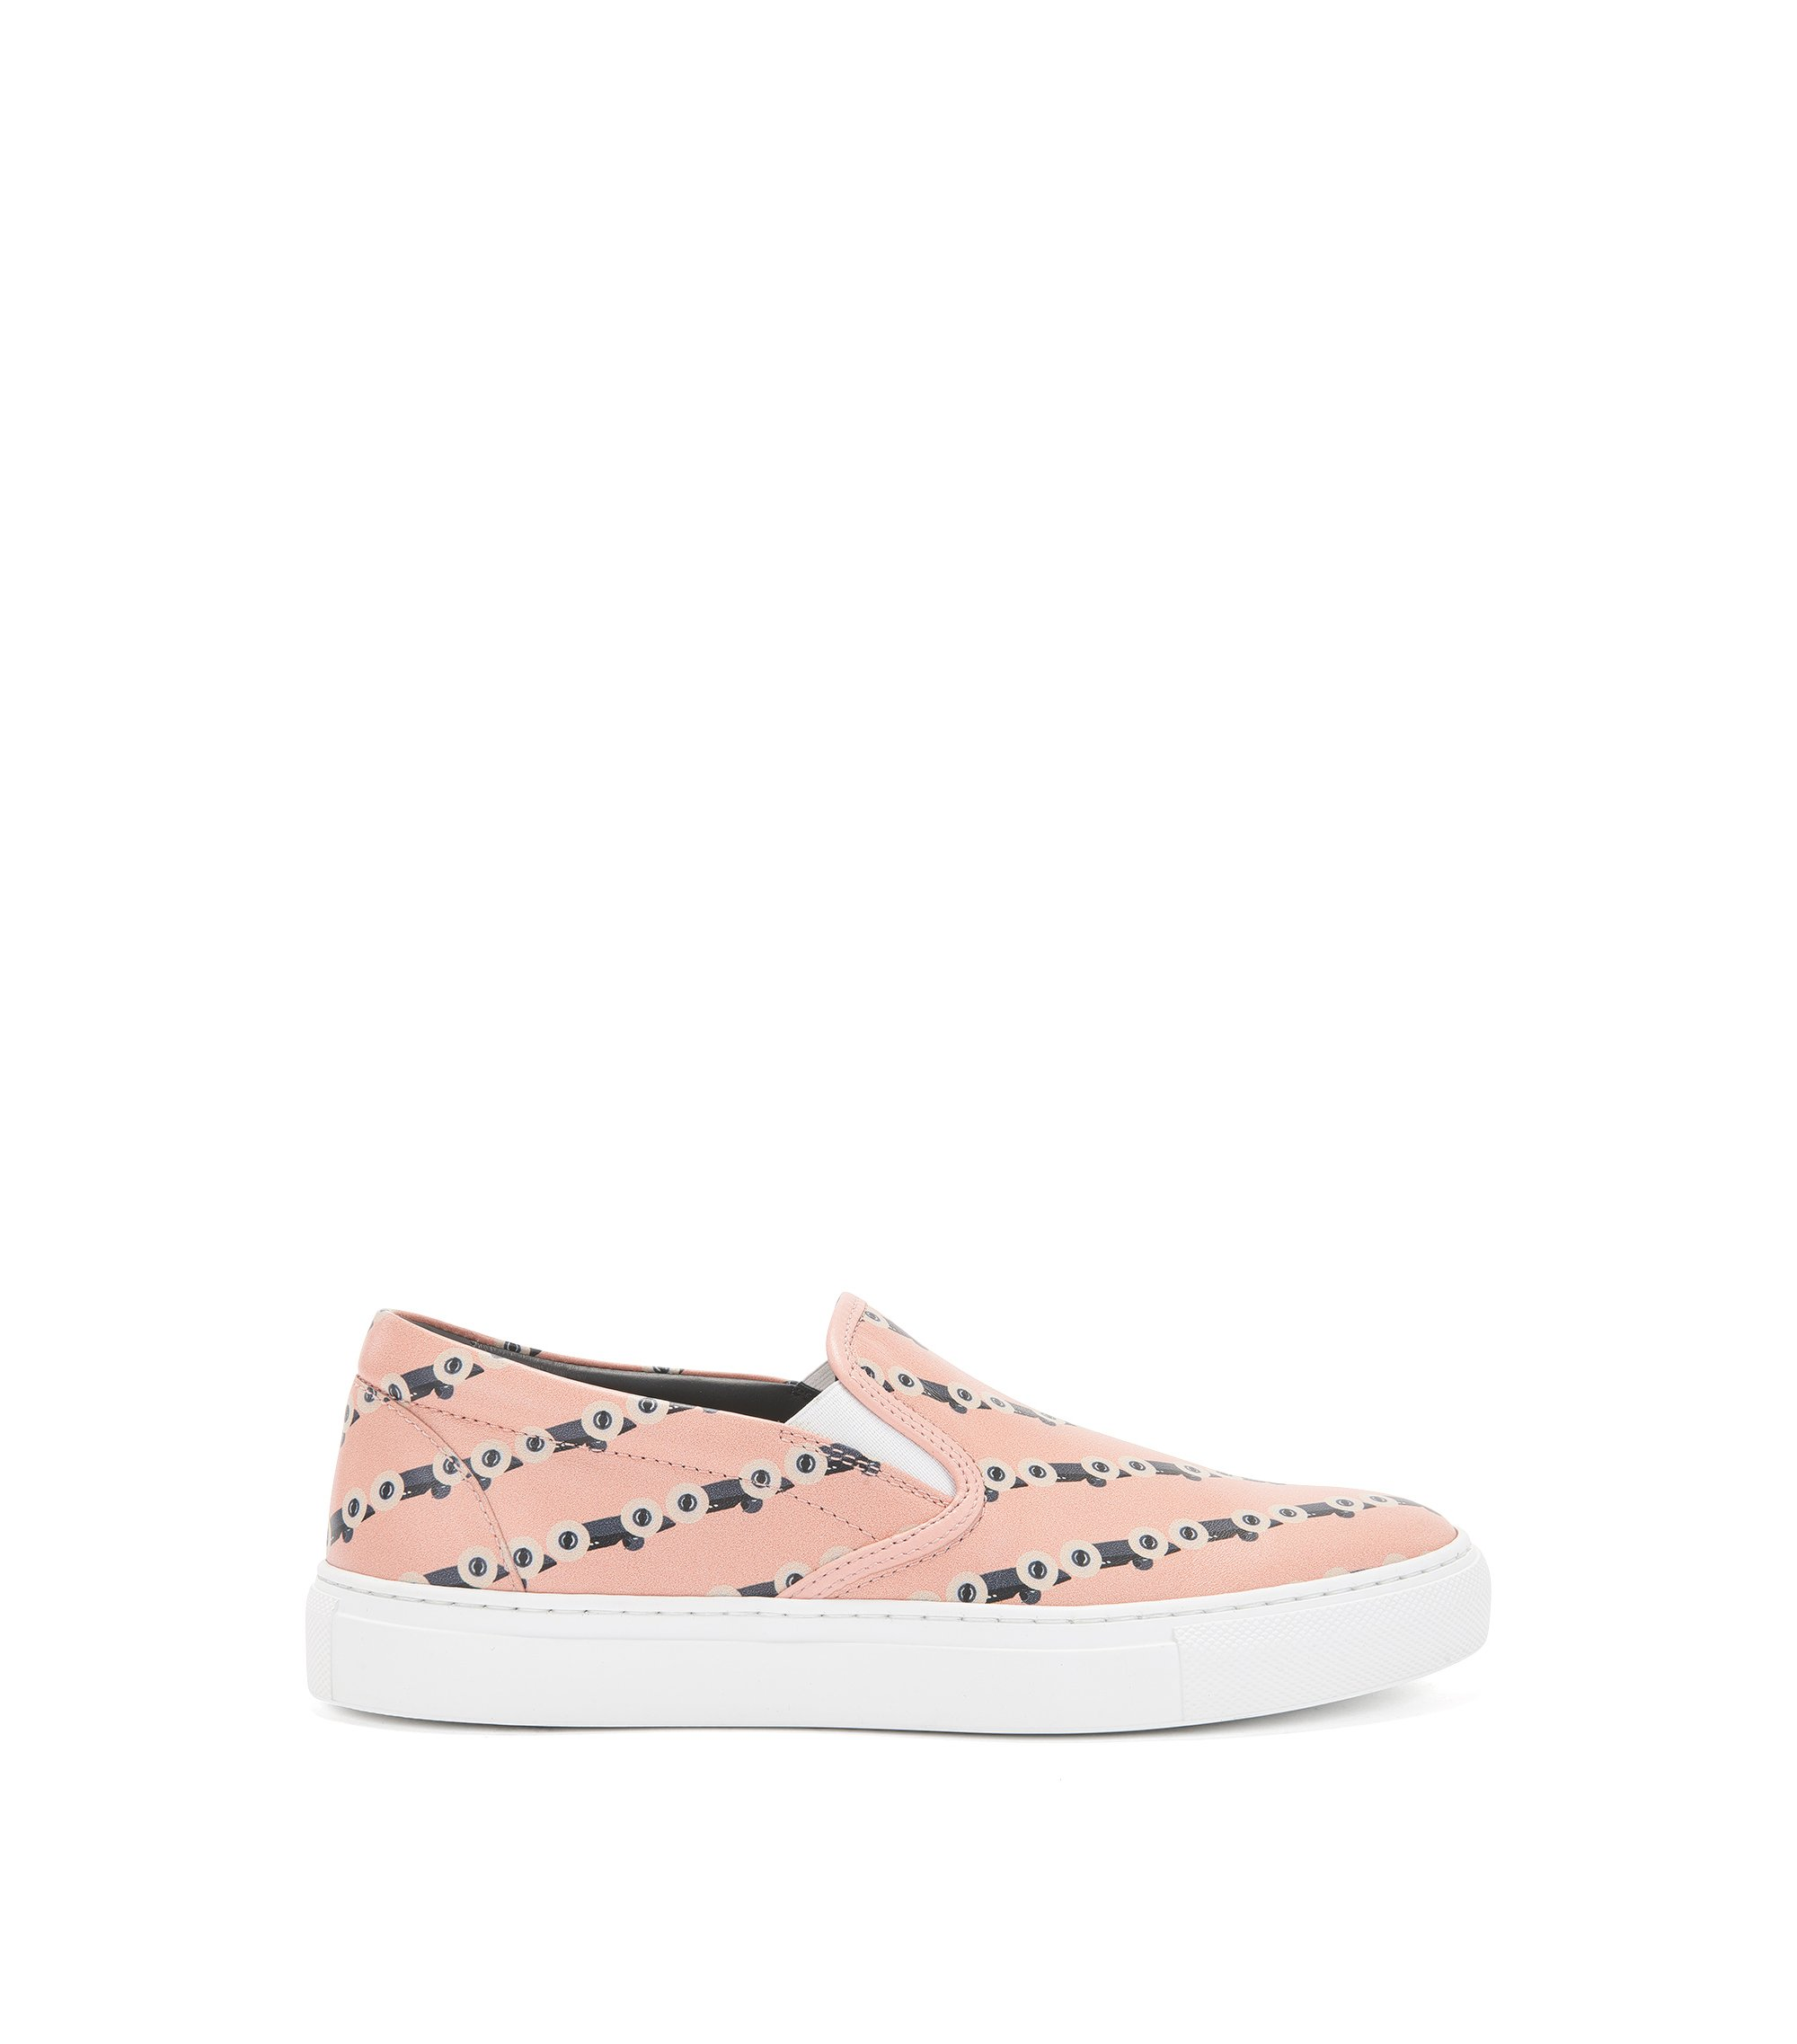 Slip-on leather trainers with race car print, light pink